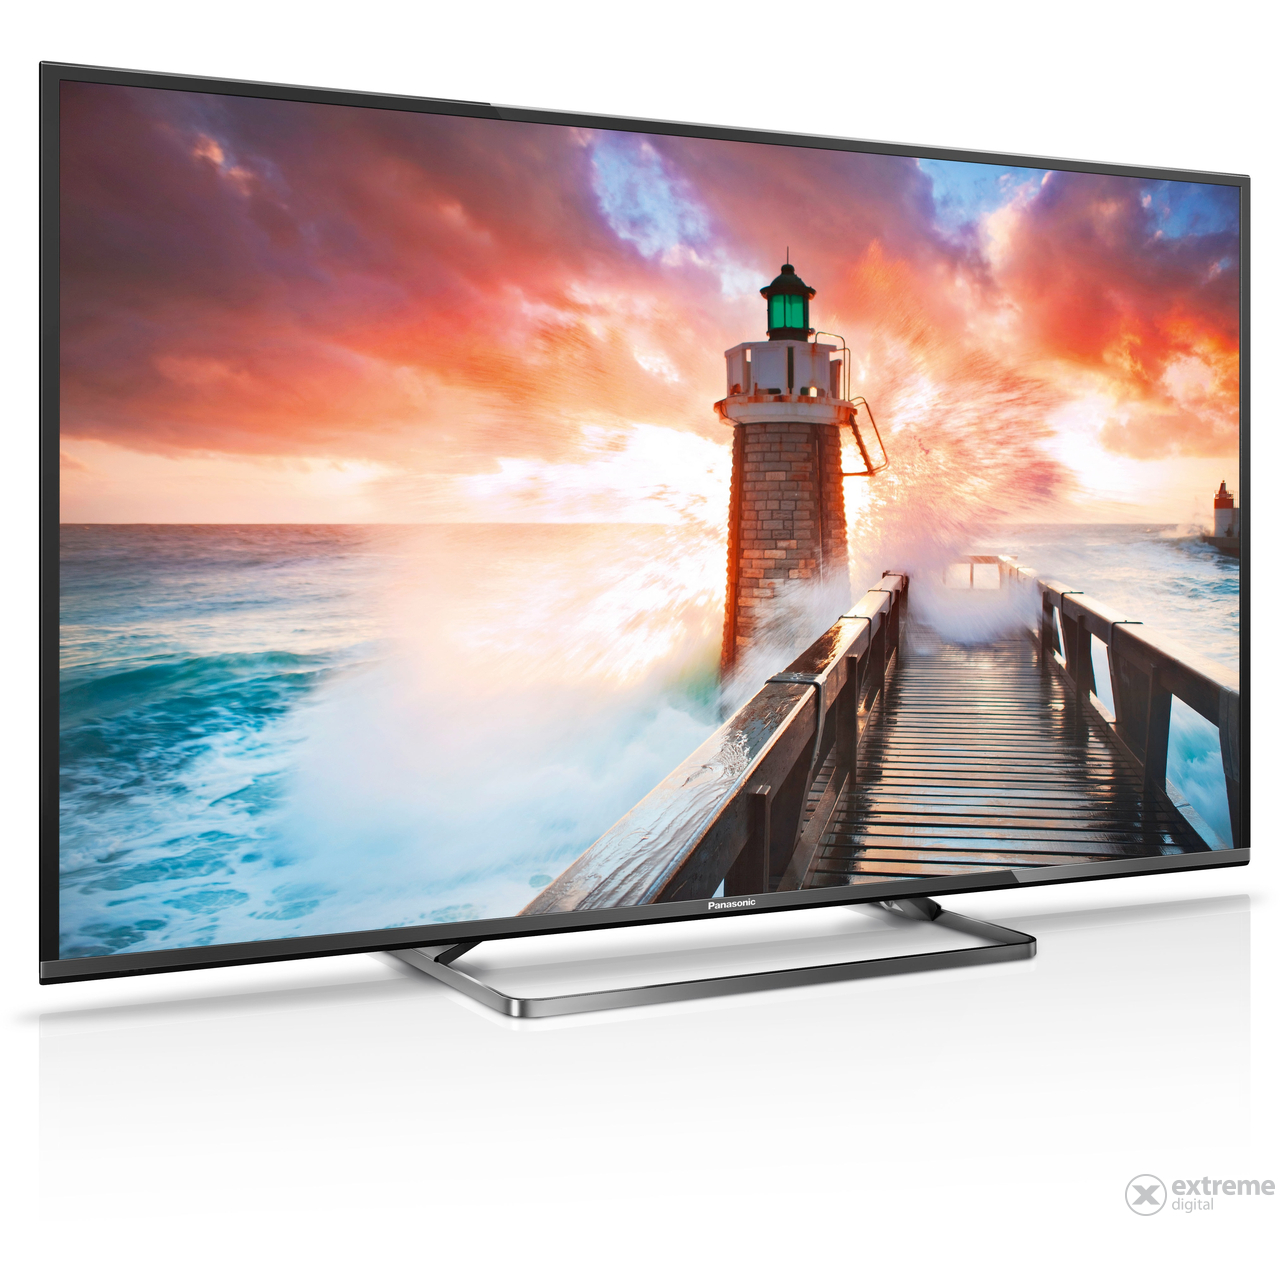 panasonic-tx-40cx670e-uhd-smart-led-televizio_5c27c181.jpg